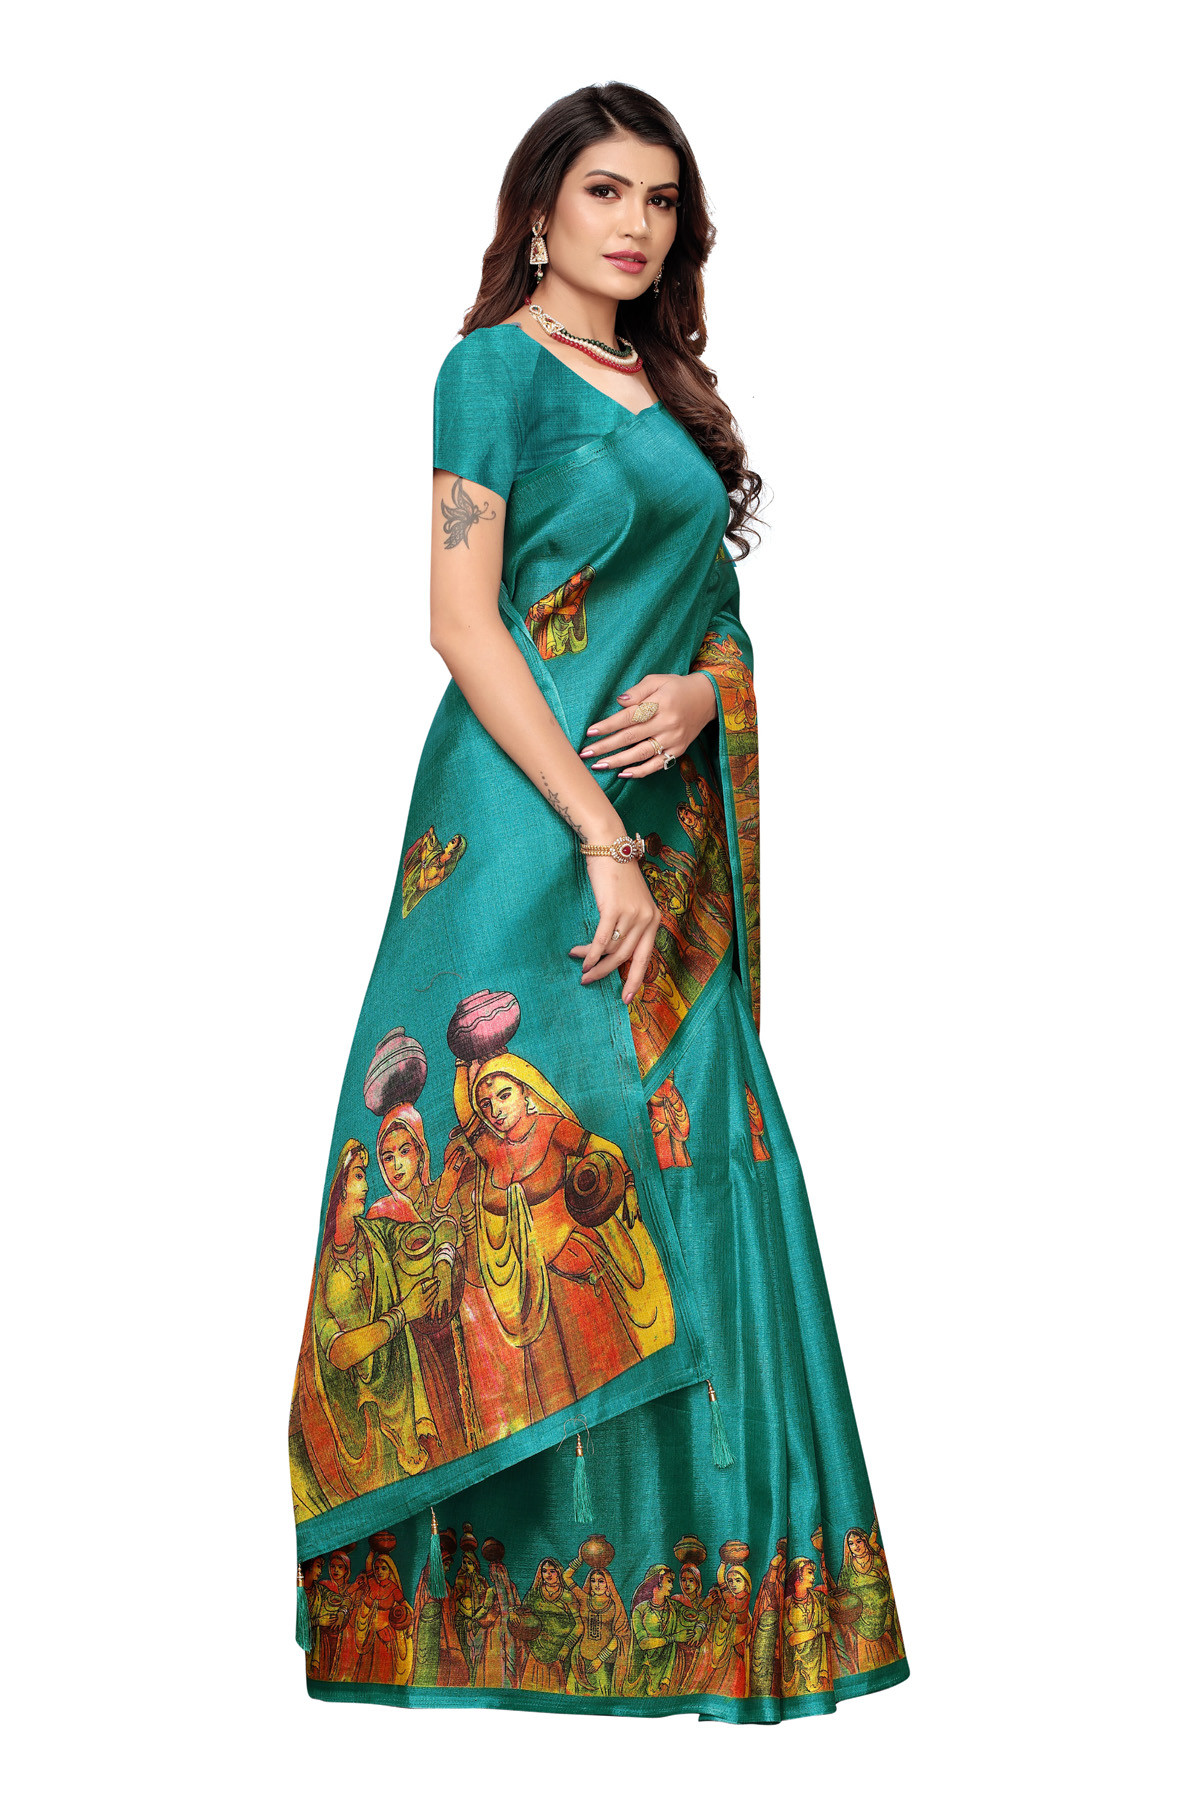 Cultural Party wear Peacock Blue Color Khadi Silk Jhalor saree